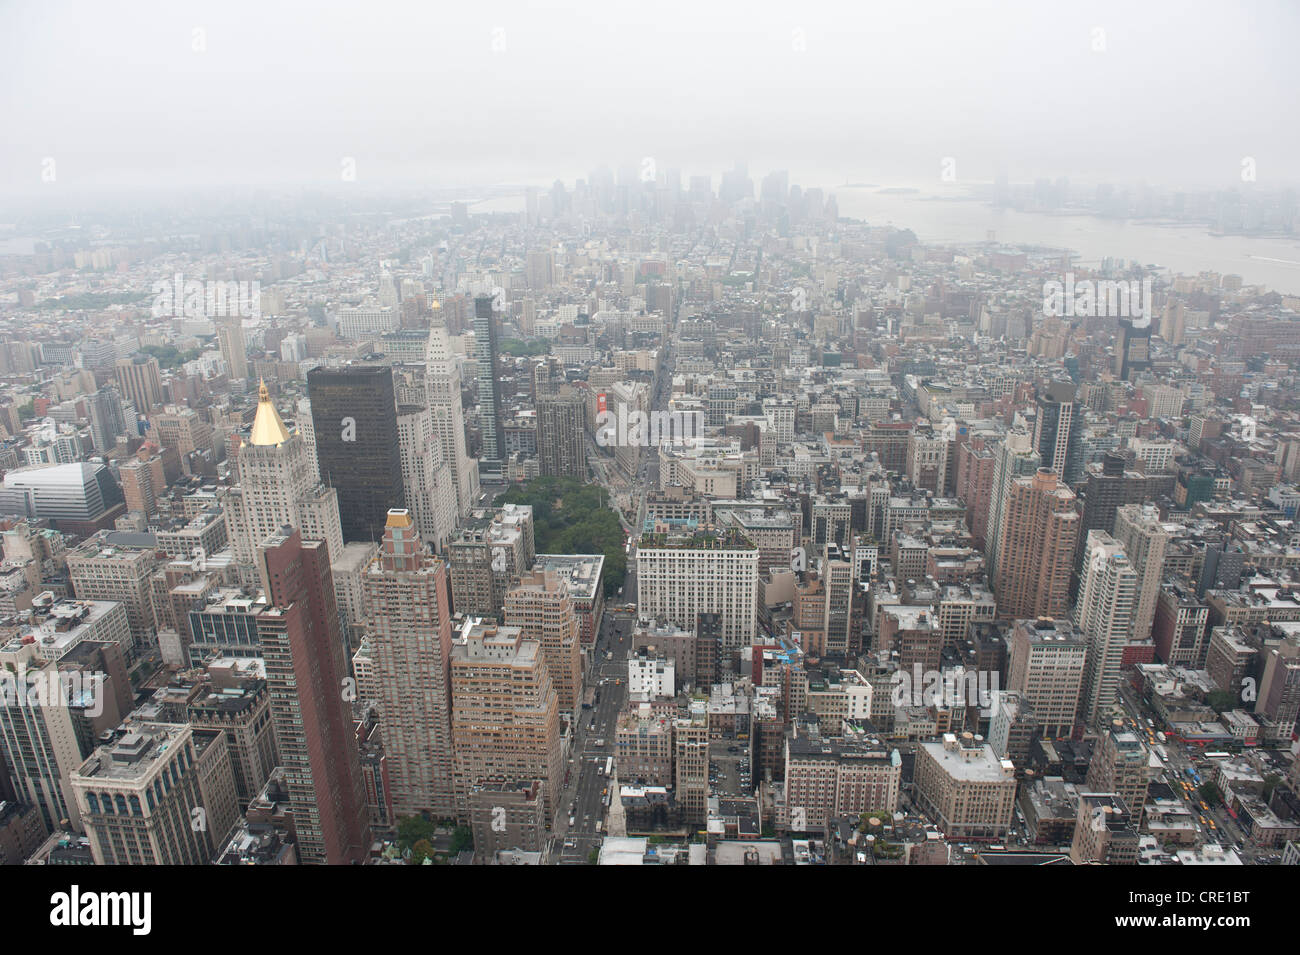 Metropolis, sea of houses, view from the Empire State Building to the skyscrapers of the Financial District in fog - Stock Image